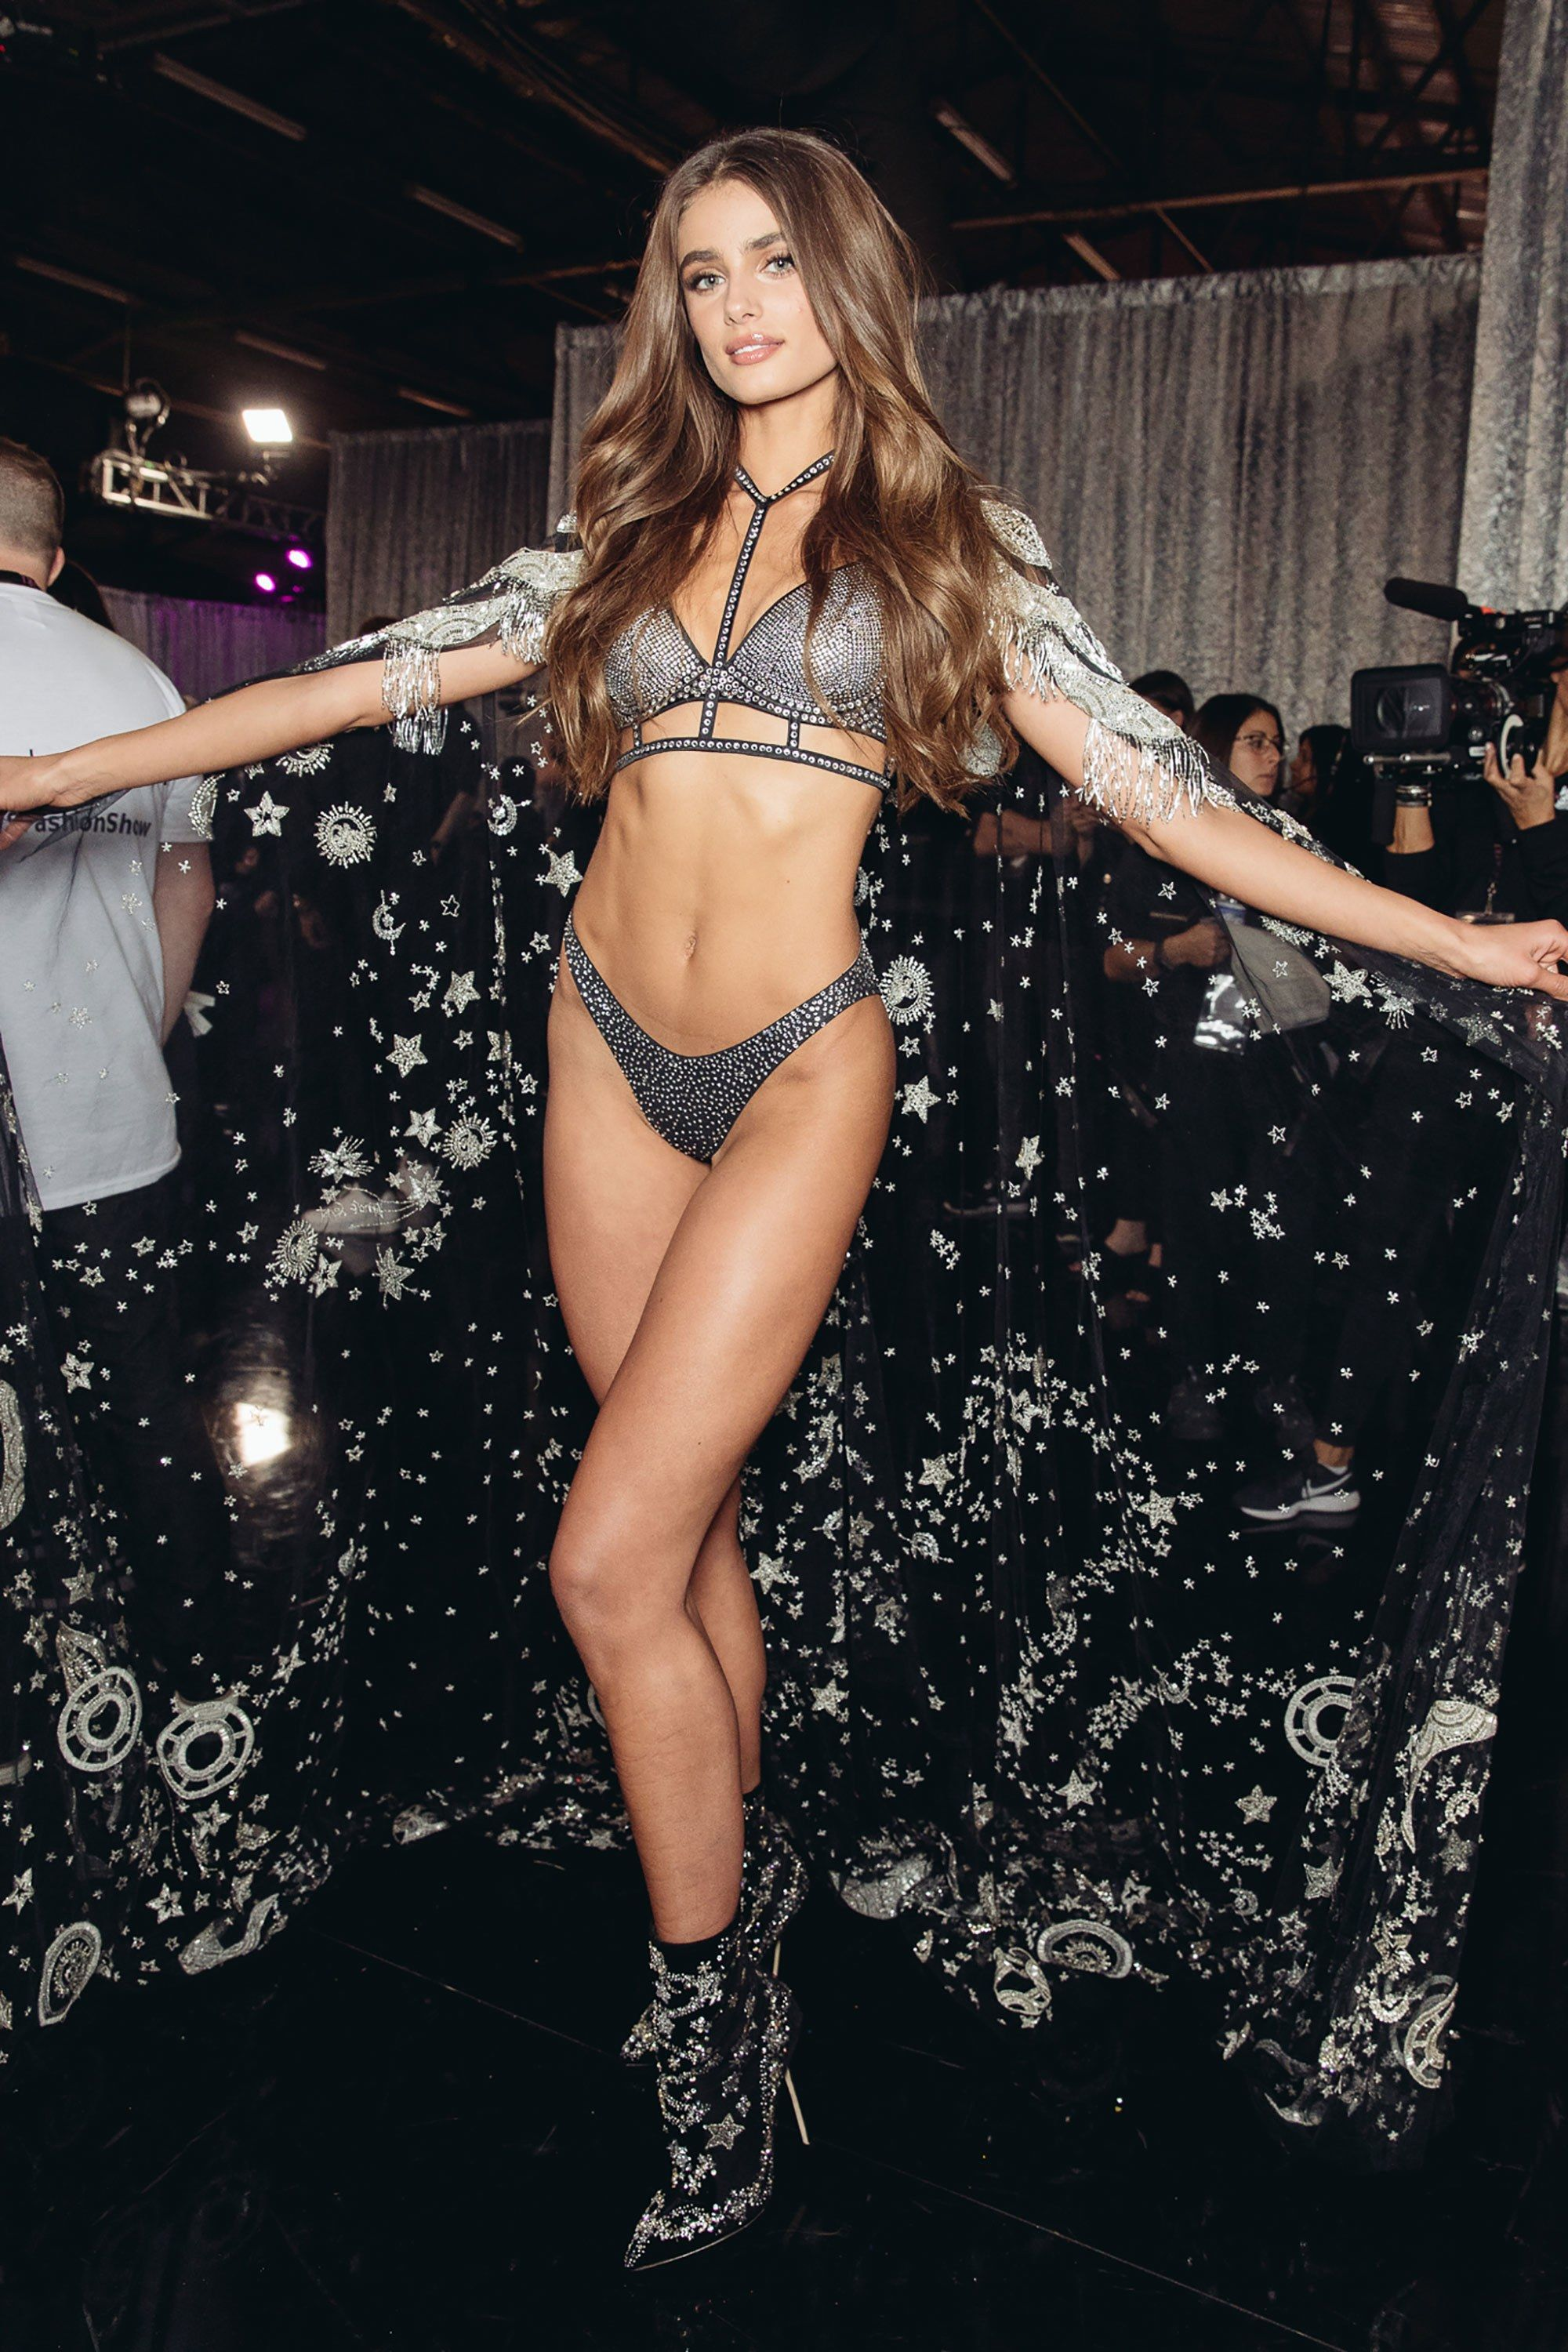 e0c3880791aa Go Backstage at the Victoria's Secret Fashion Show in New York City ...